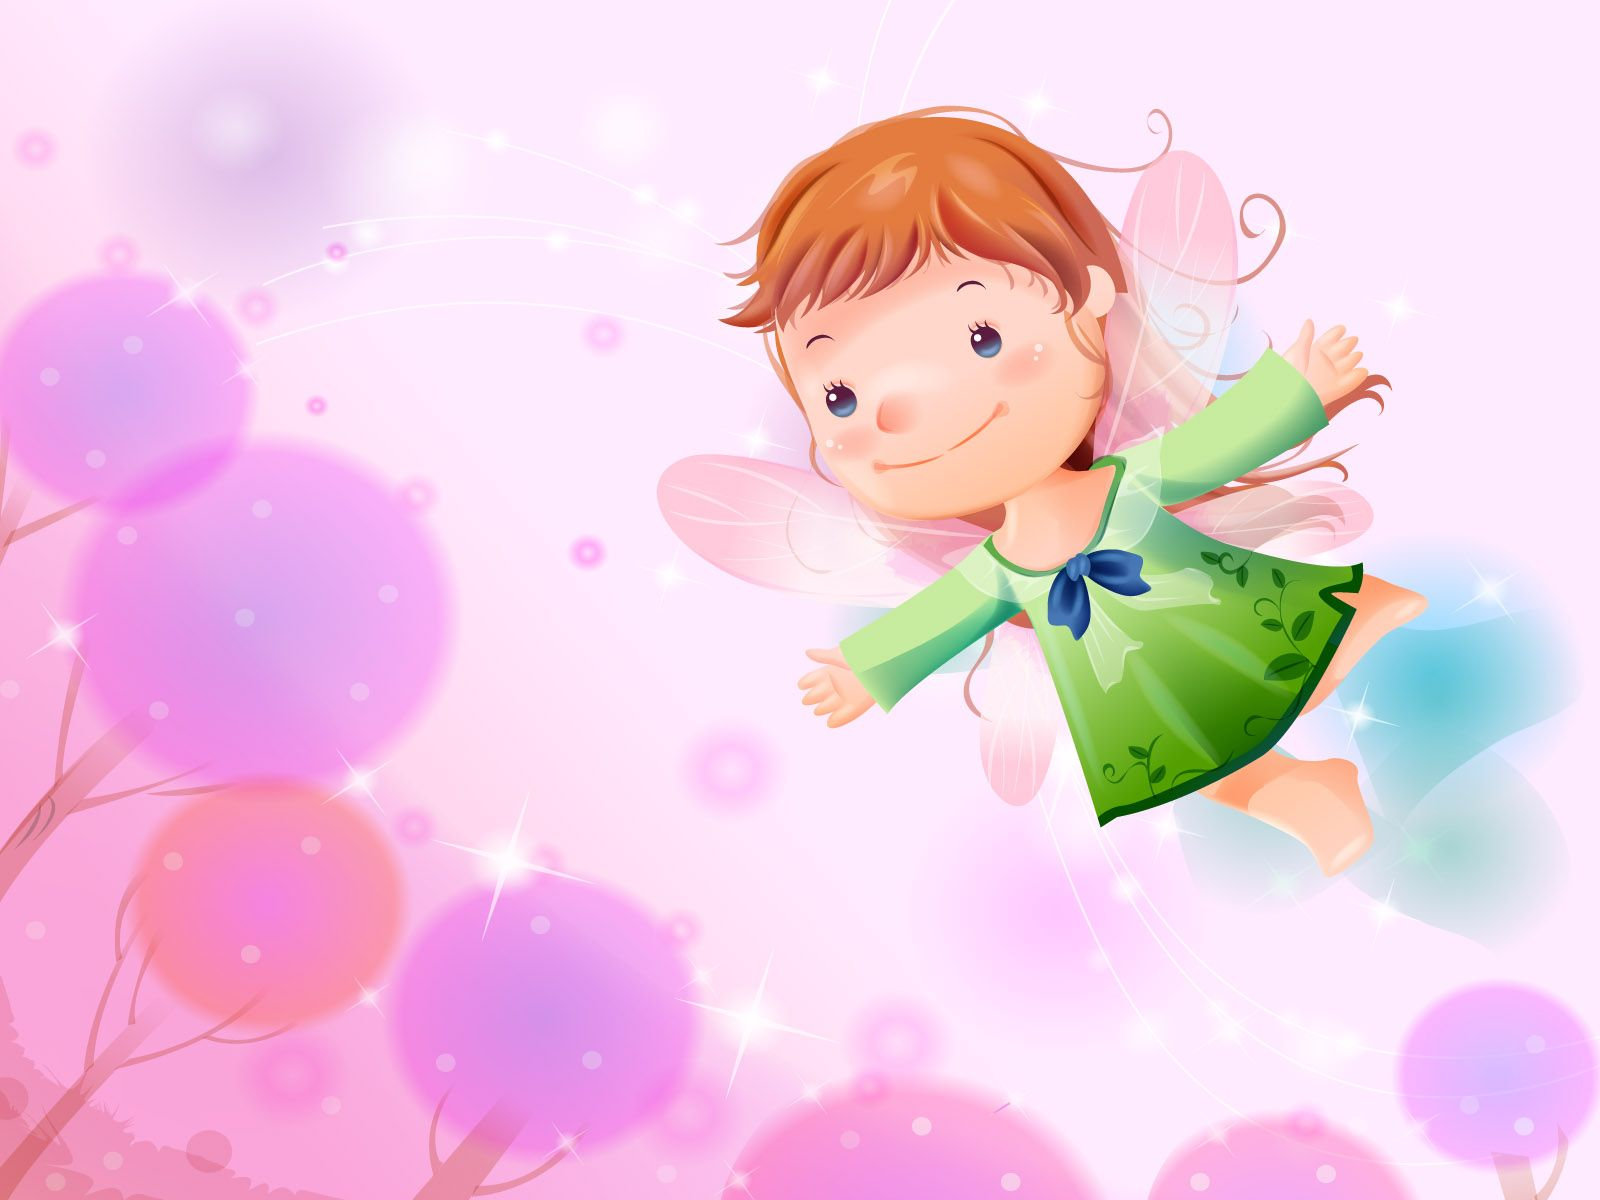 Pin by Brittany Feaser on Fairies | Pinterest | Vector vector ...